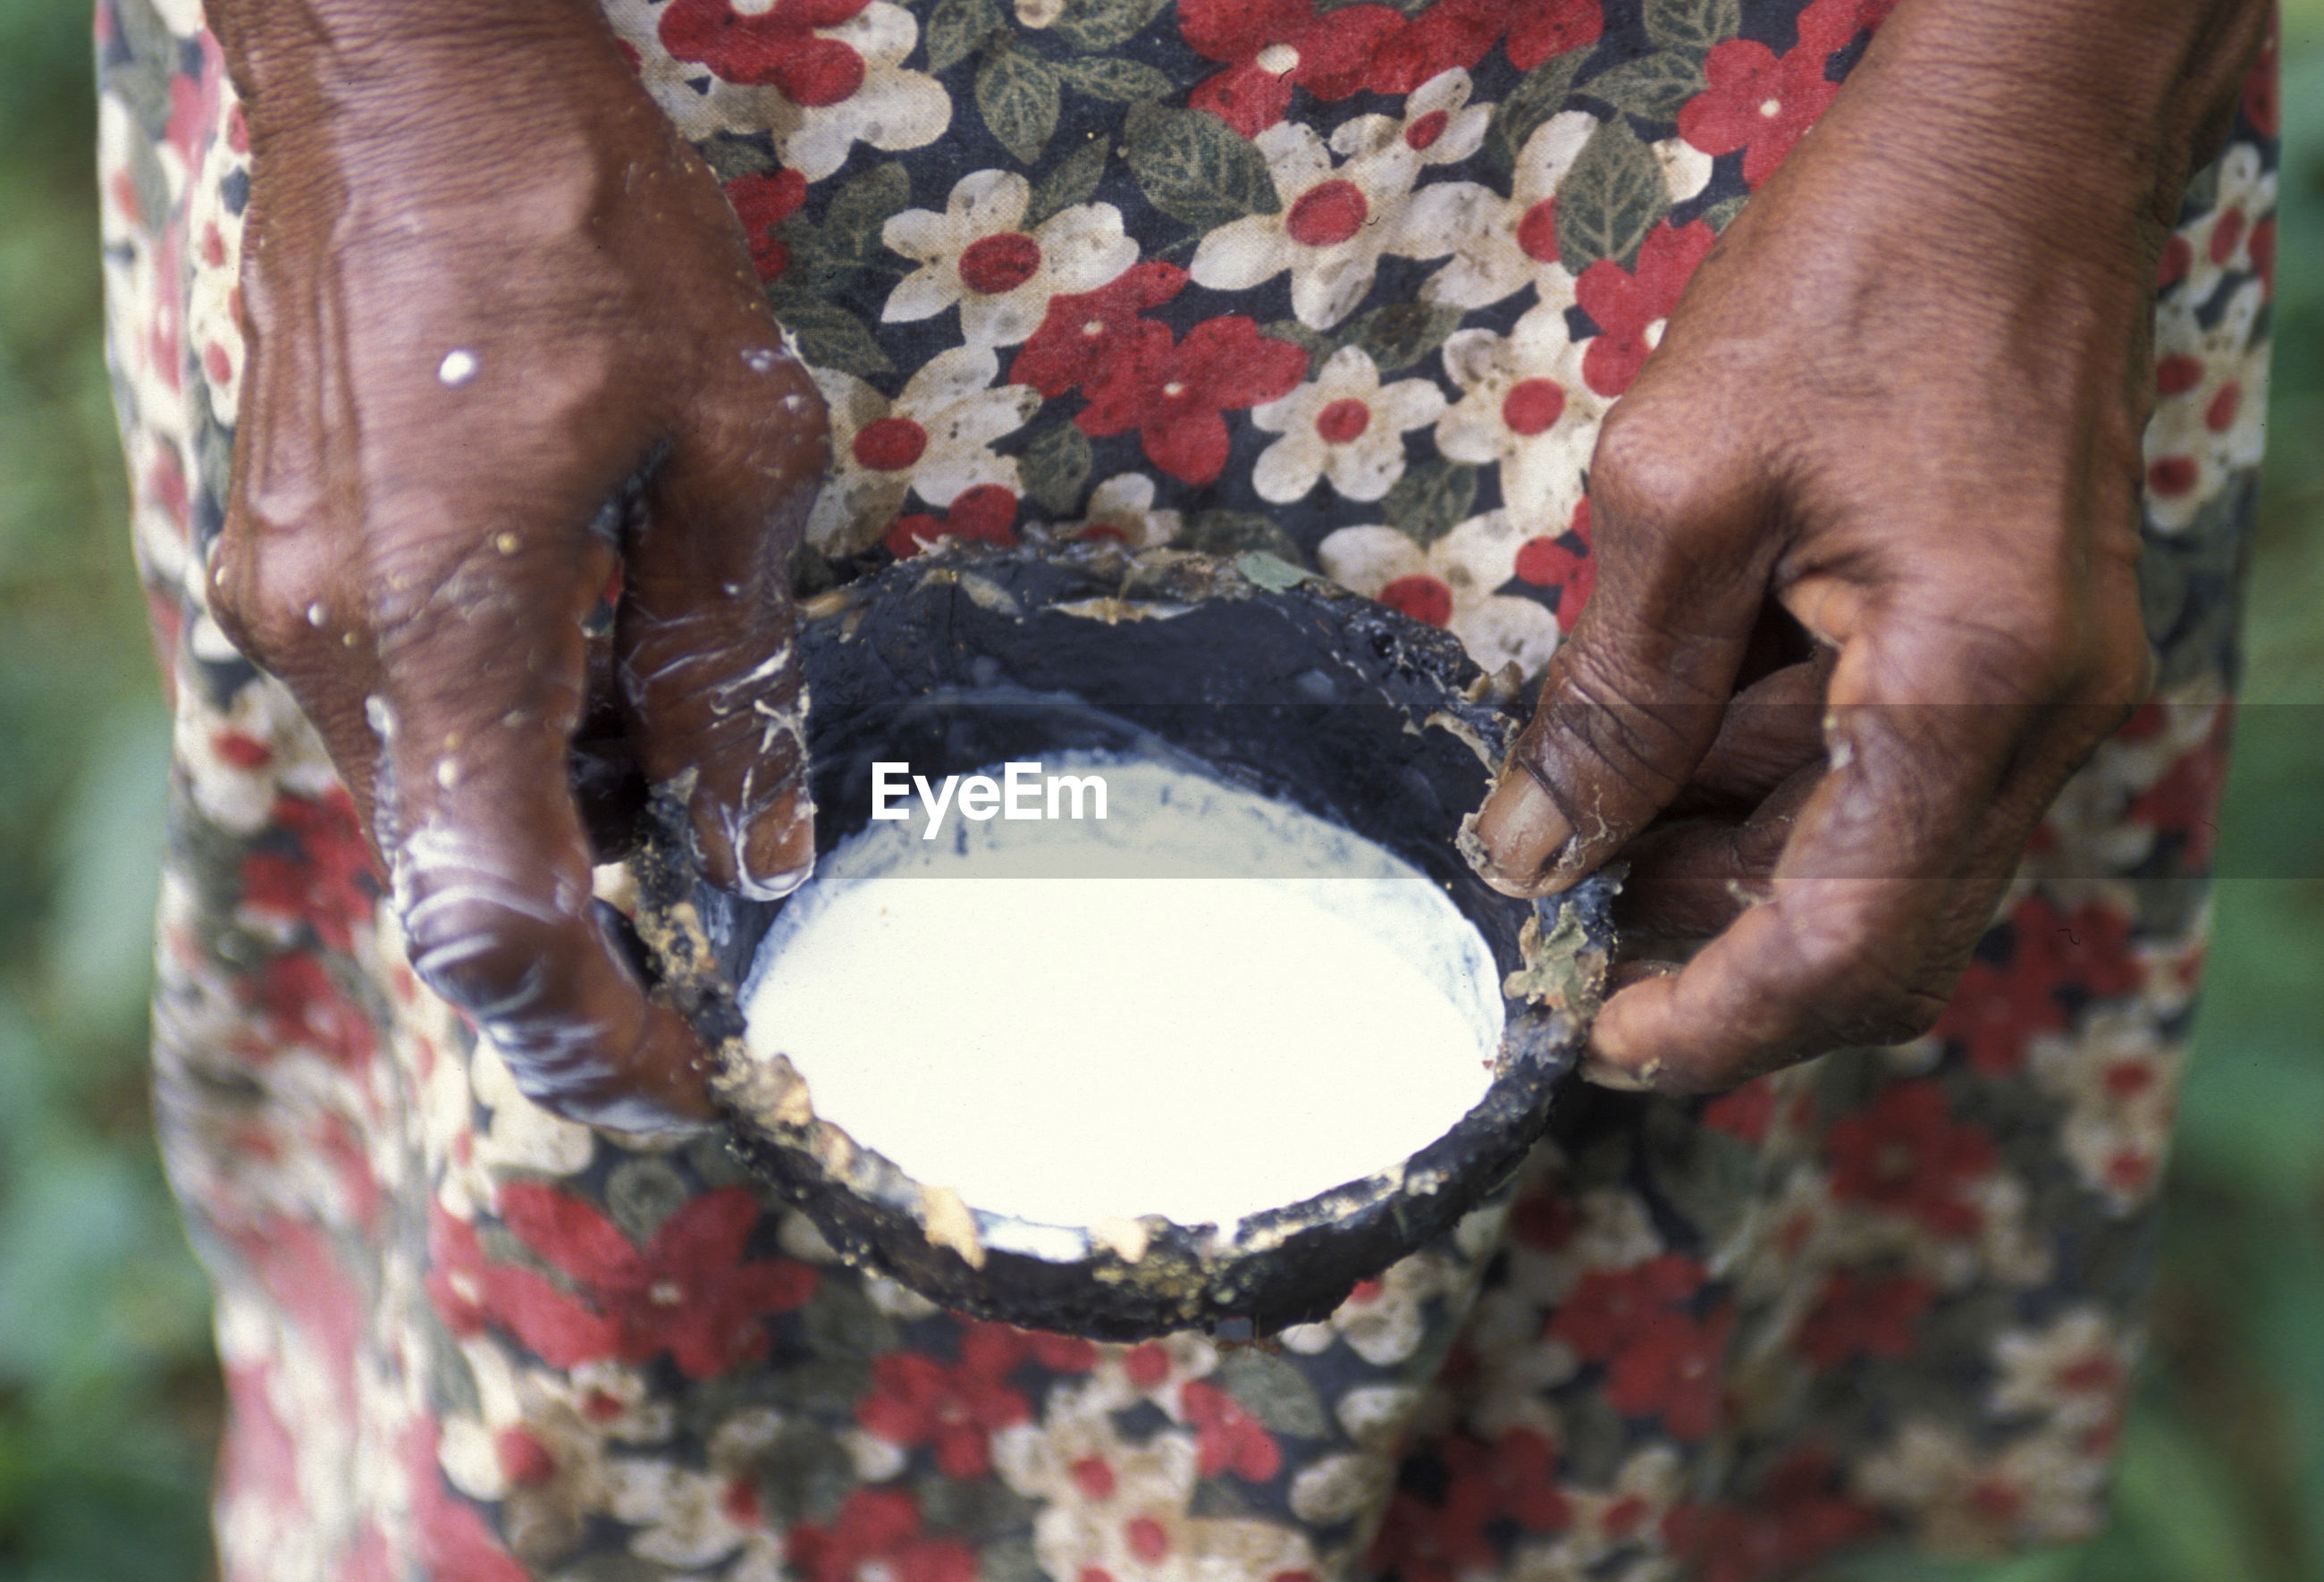 Midsection of woman holding rubber sap in bowl